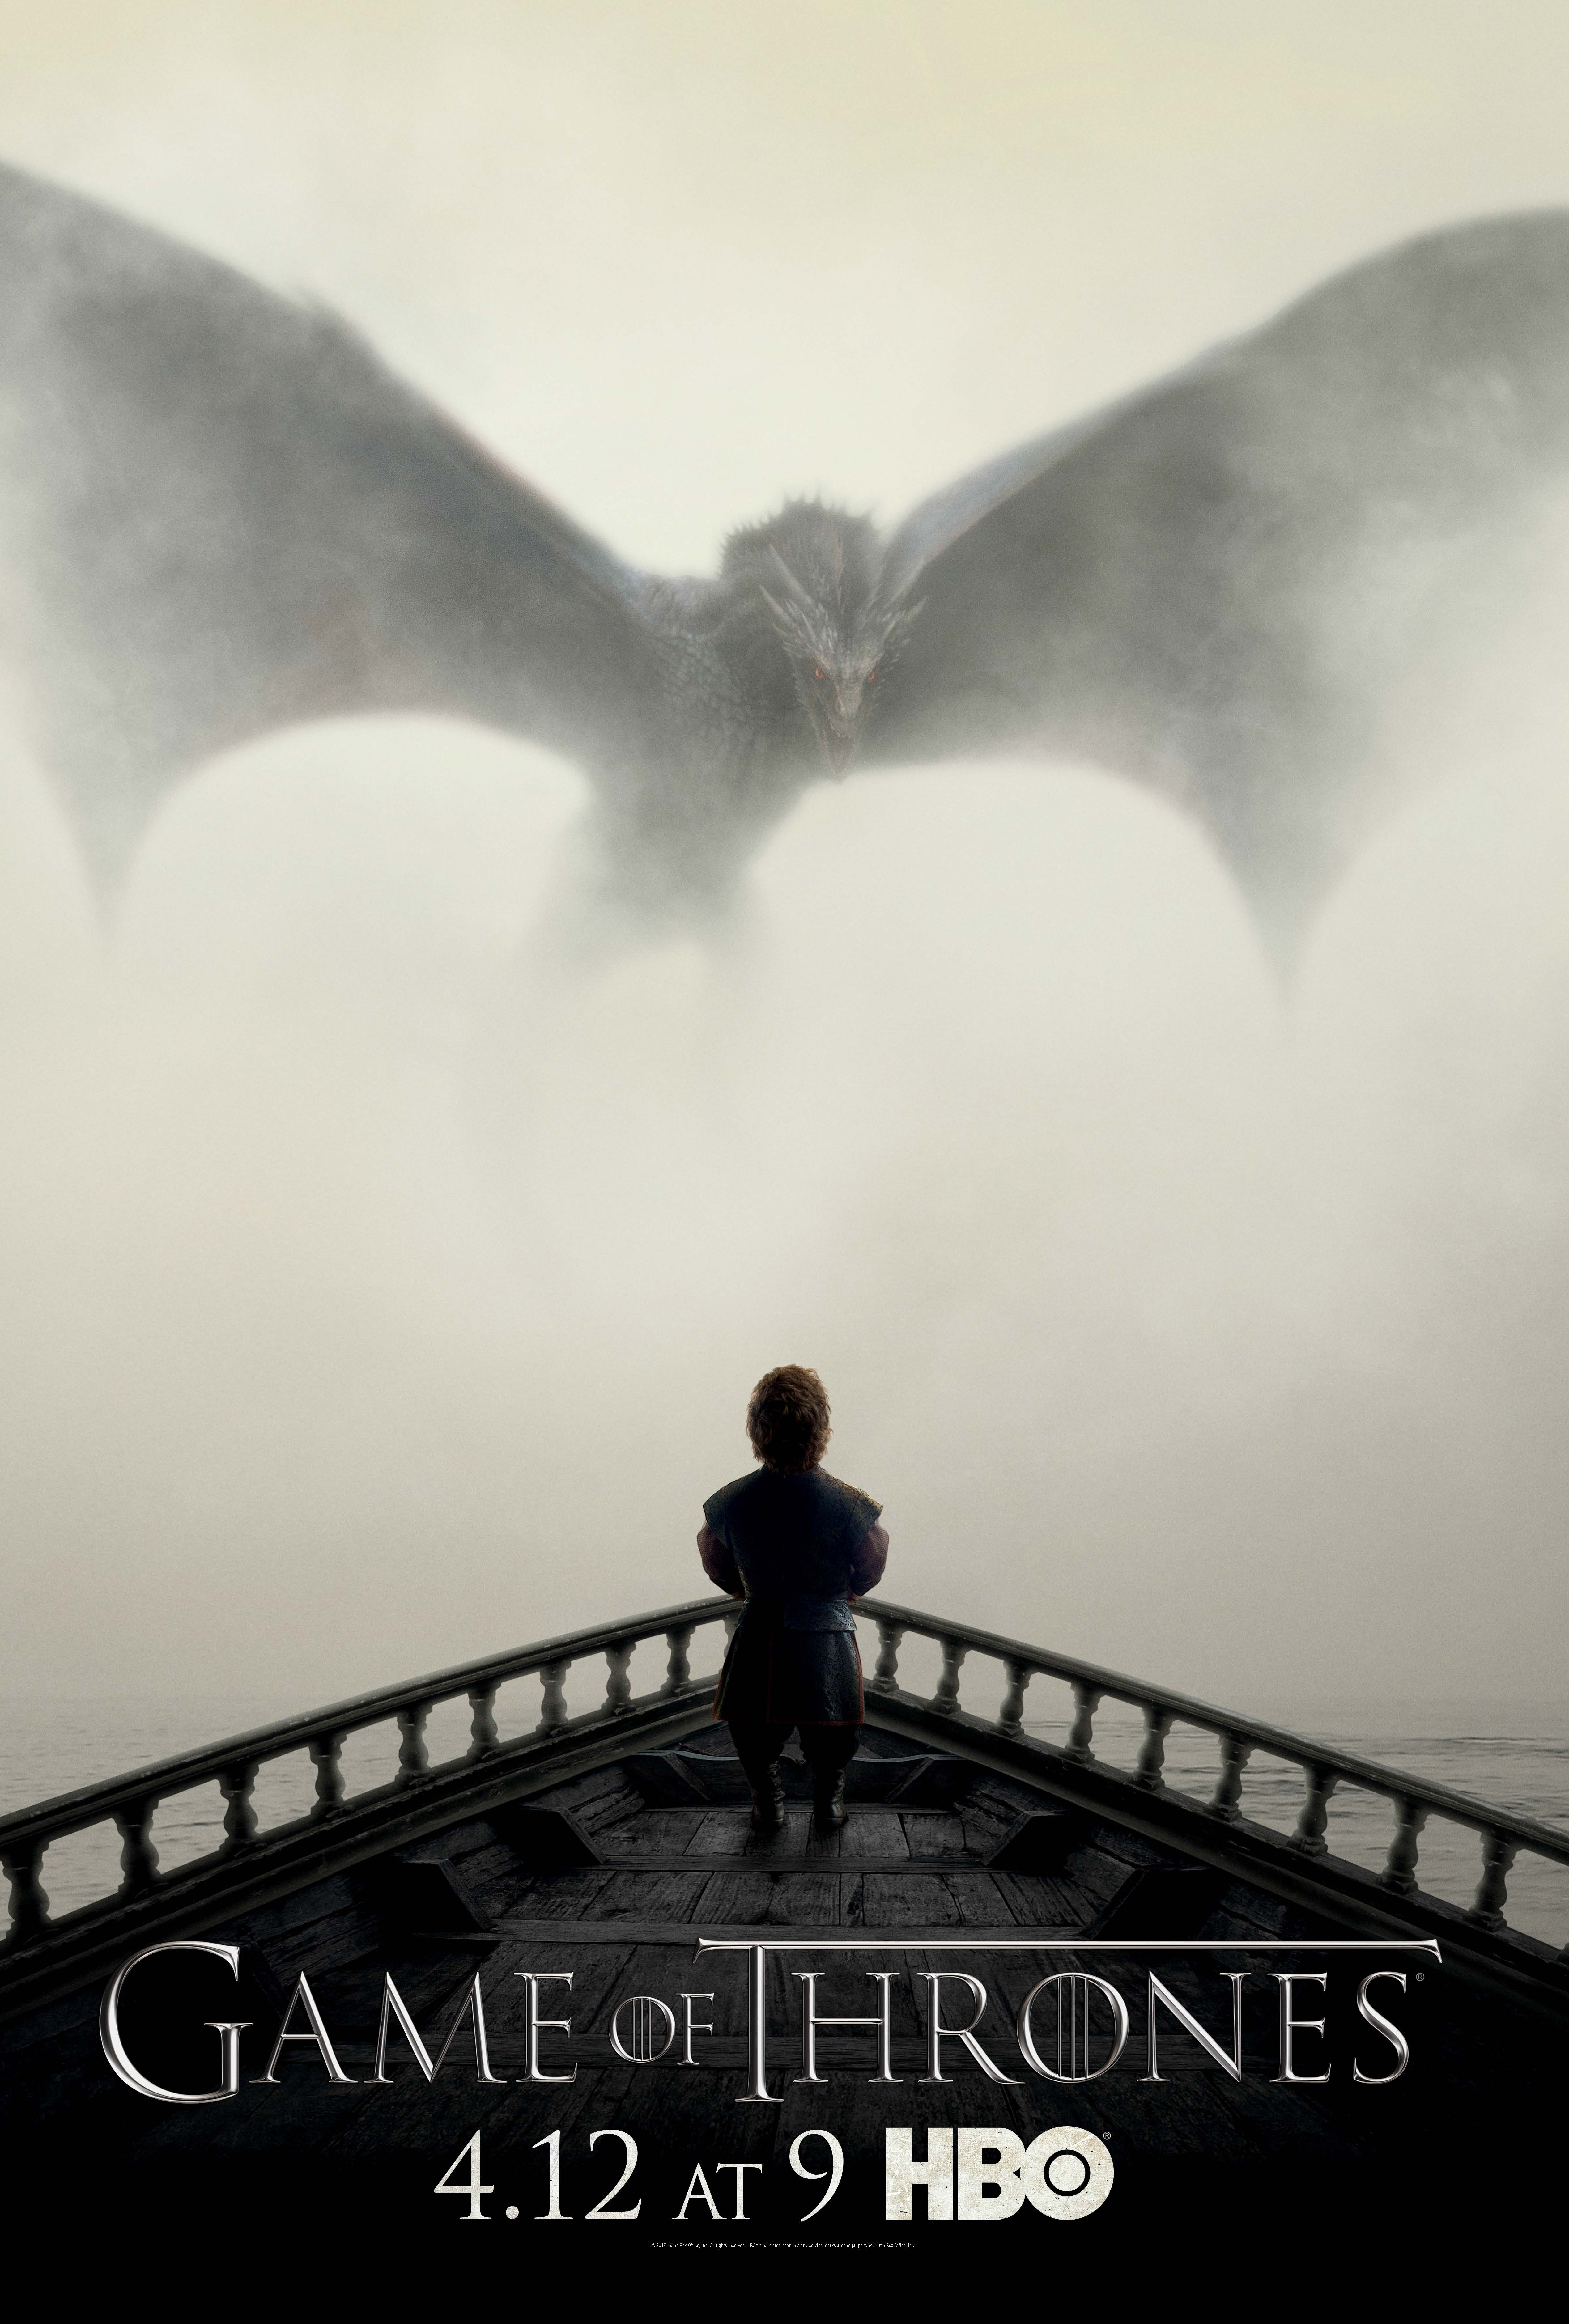 Season 5 Gameofthrones-season5_poster